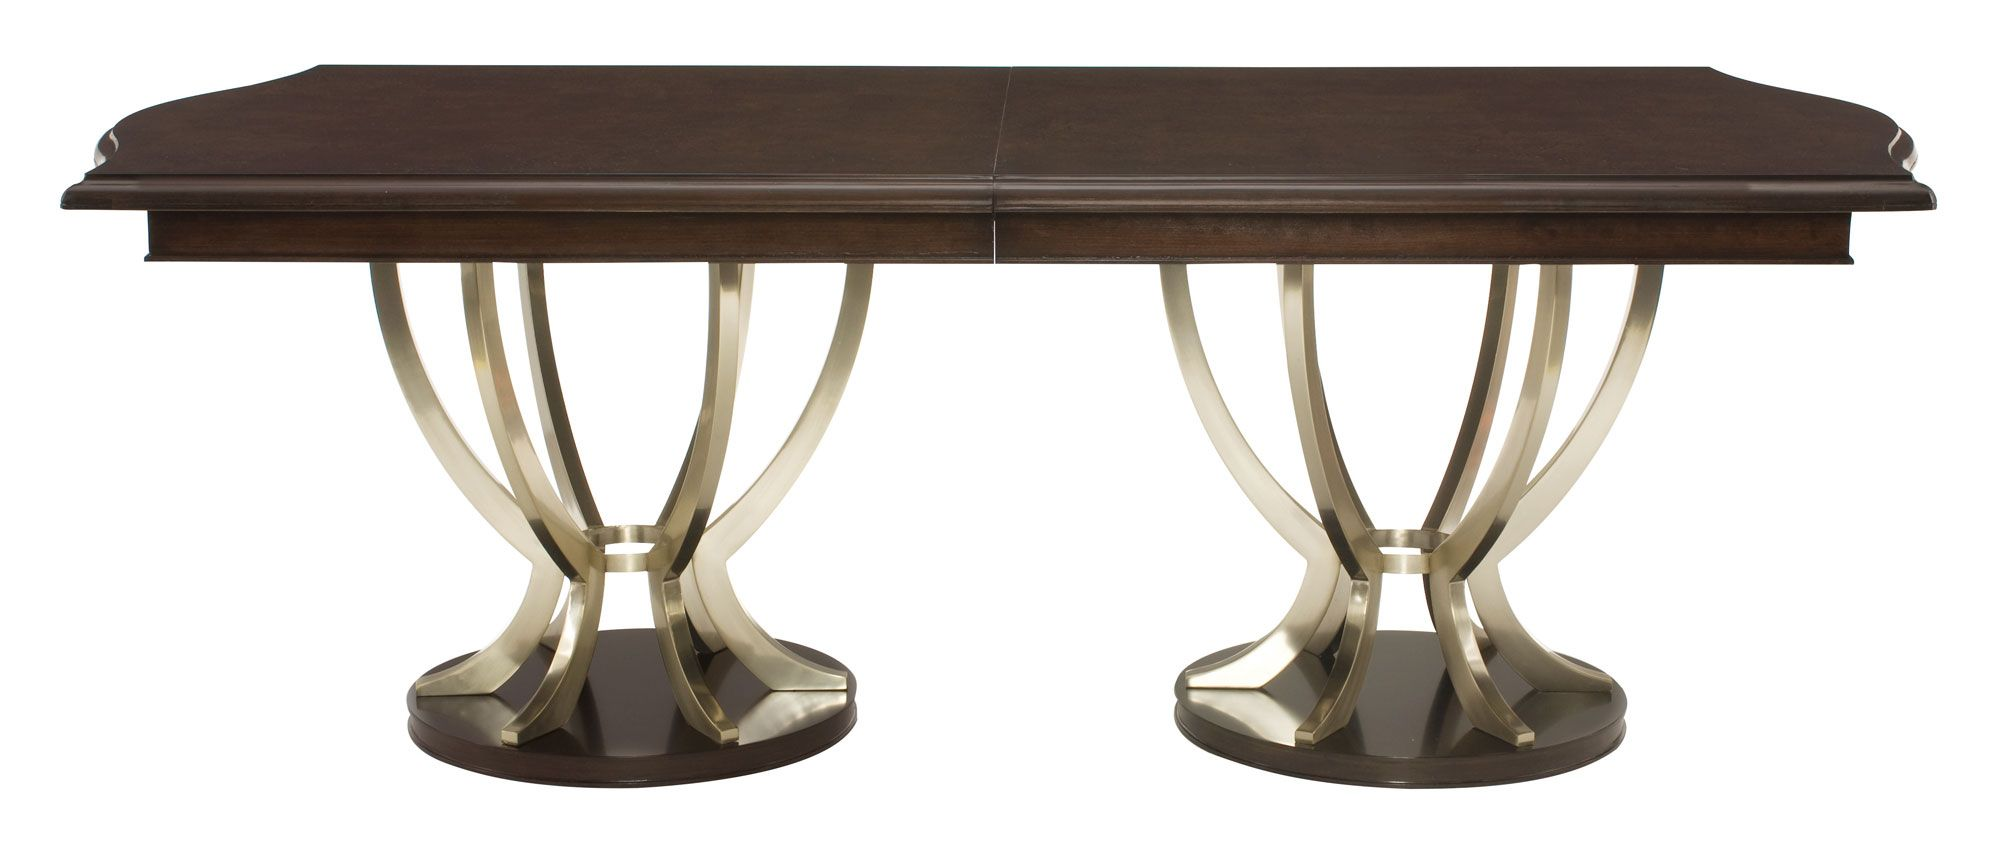 Dining Table Top And Base Bernhardt Dining Table Bases Dining